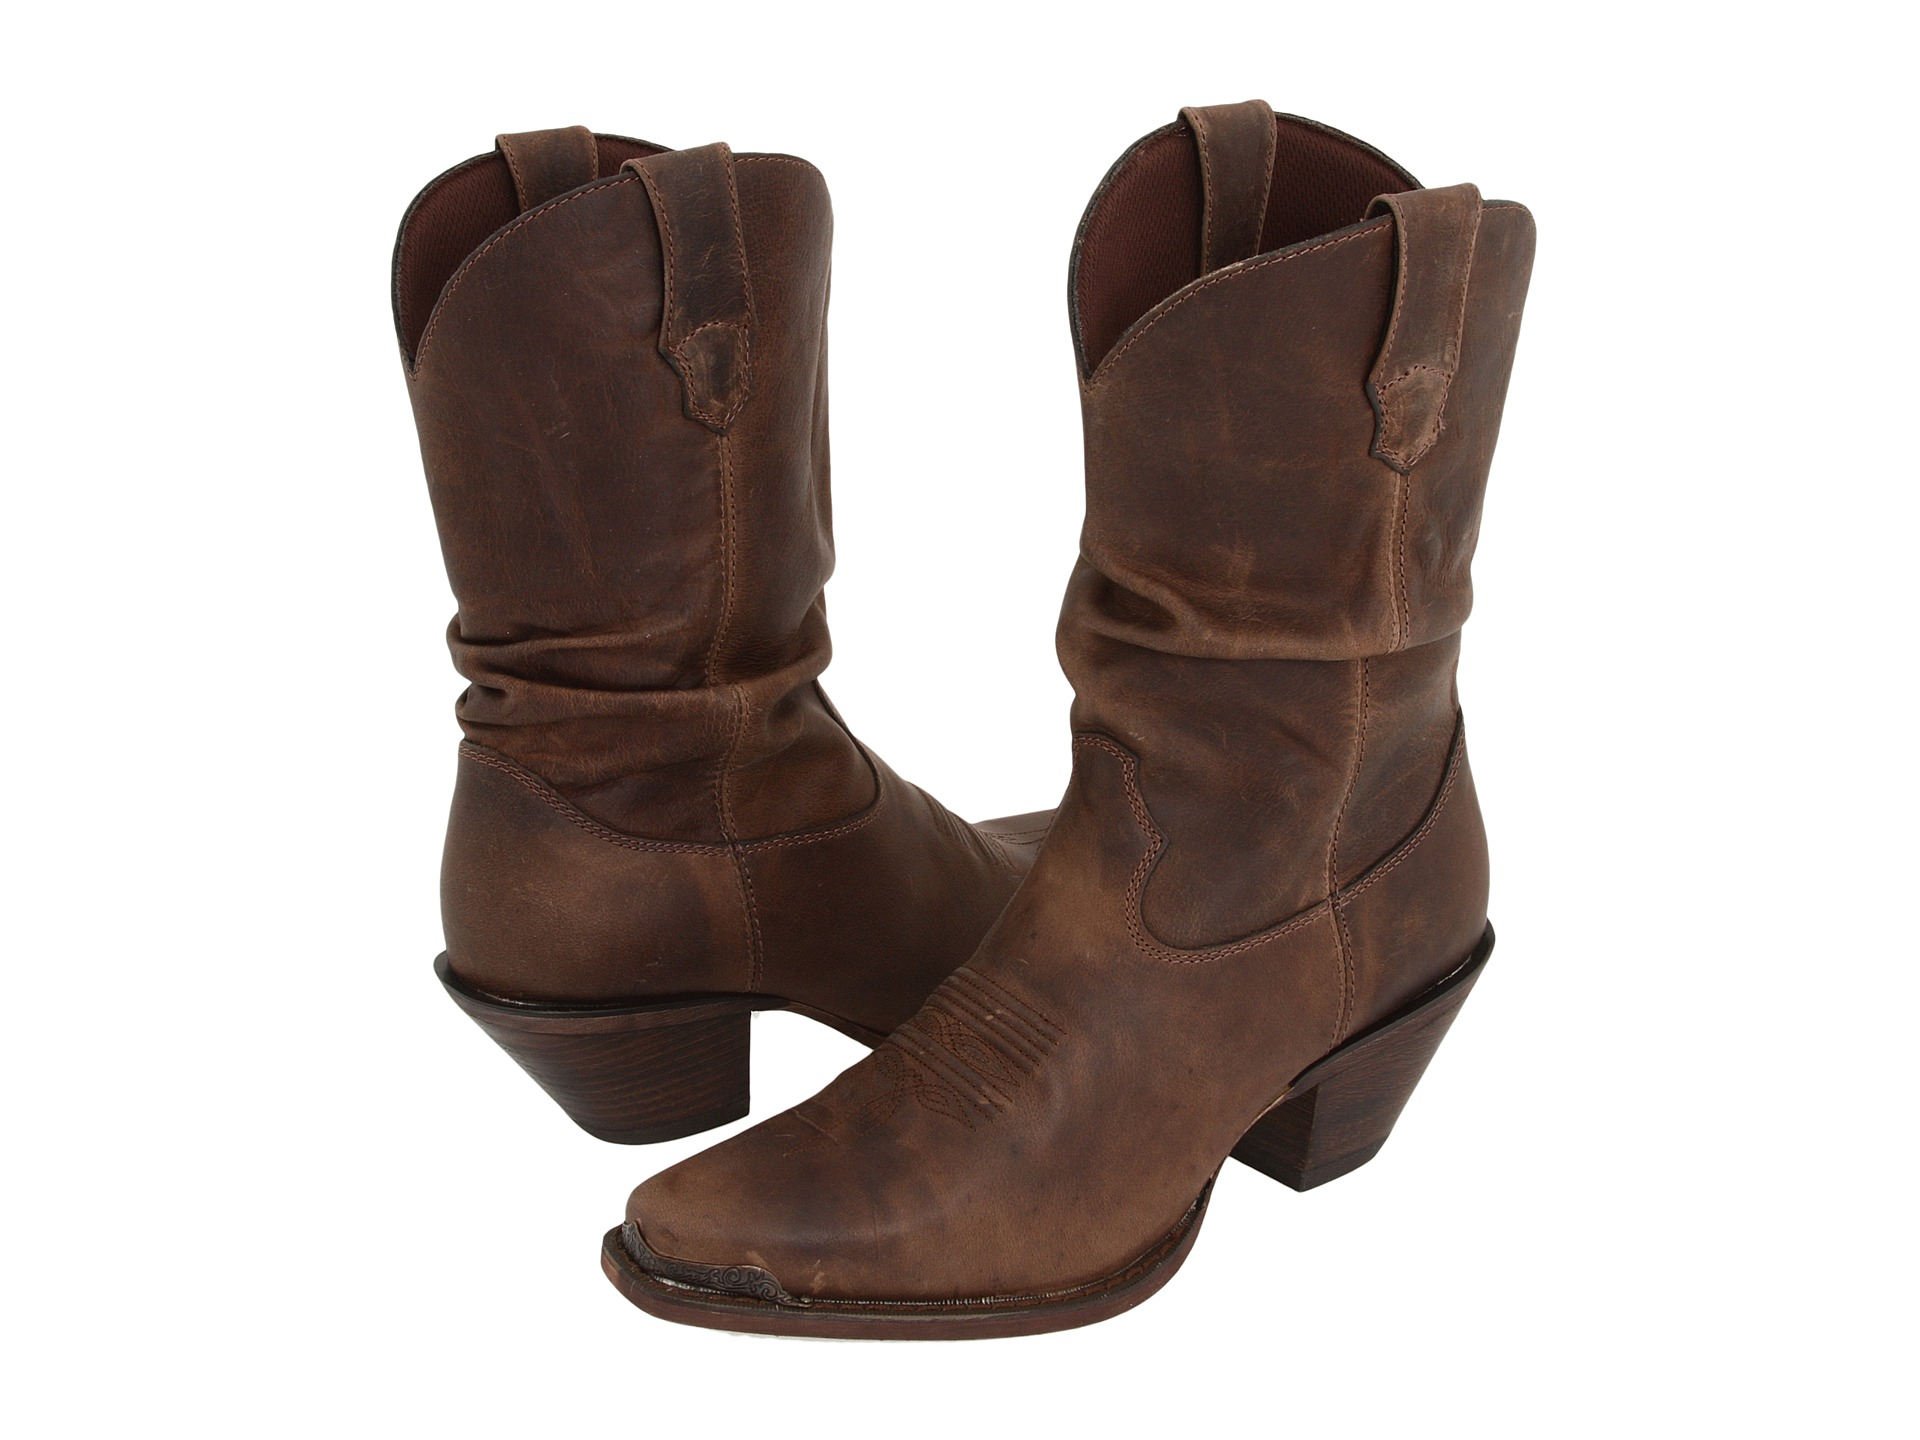 Durango Crush Slouch Boot - Zappos.com Free Shipping BOTH Ways